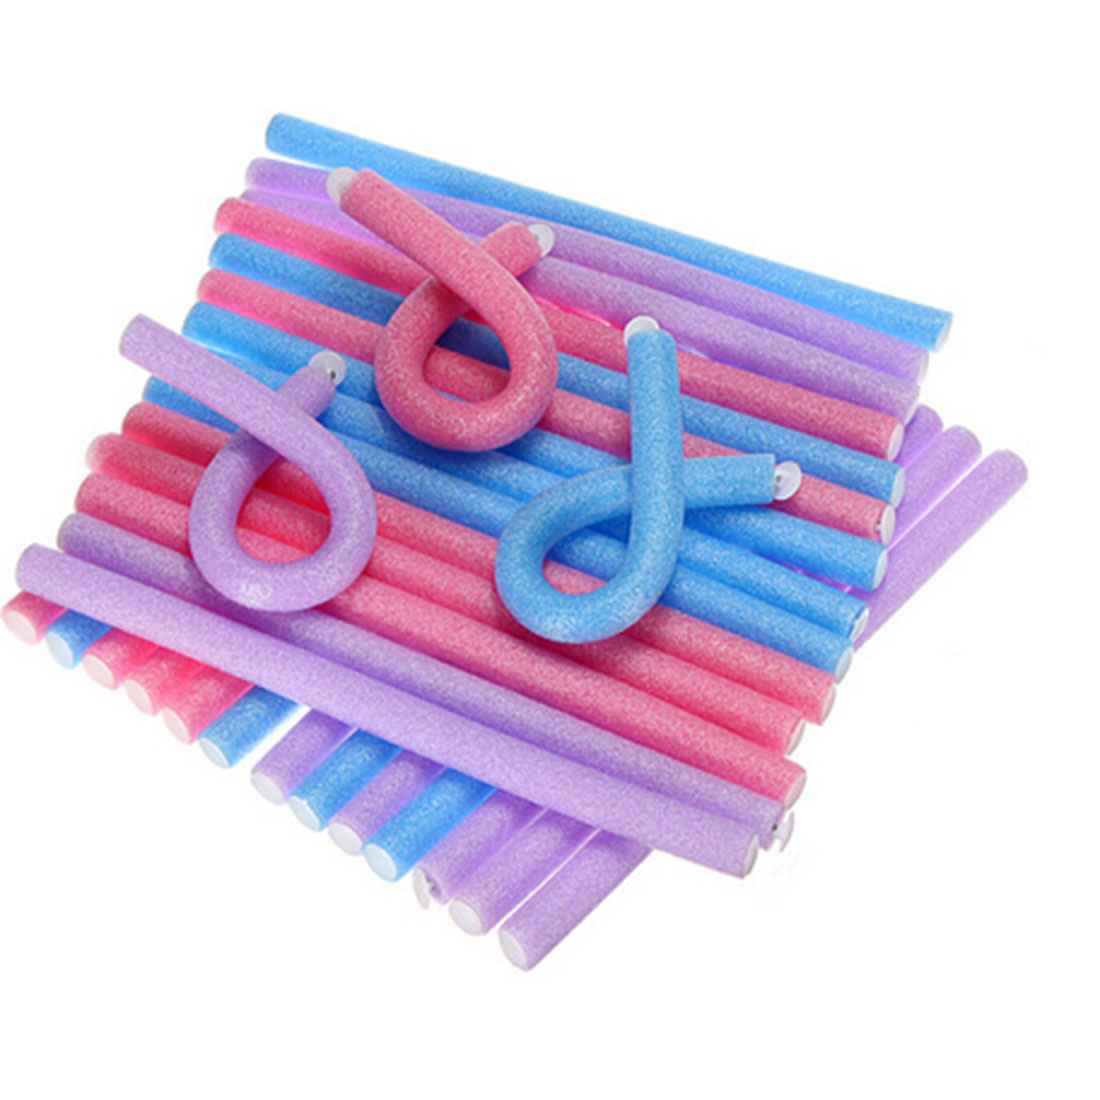 Good 10pcs Soft Foam Sponge Hair Curler Roller Curl Bendy